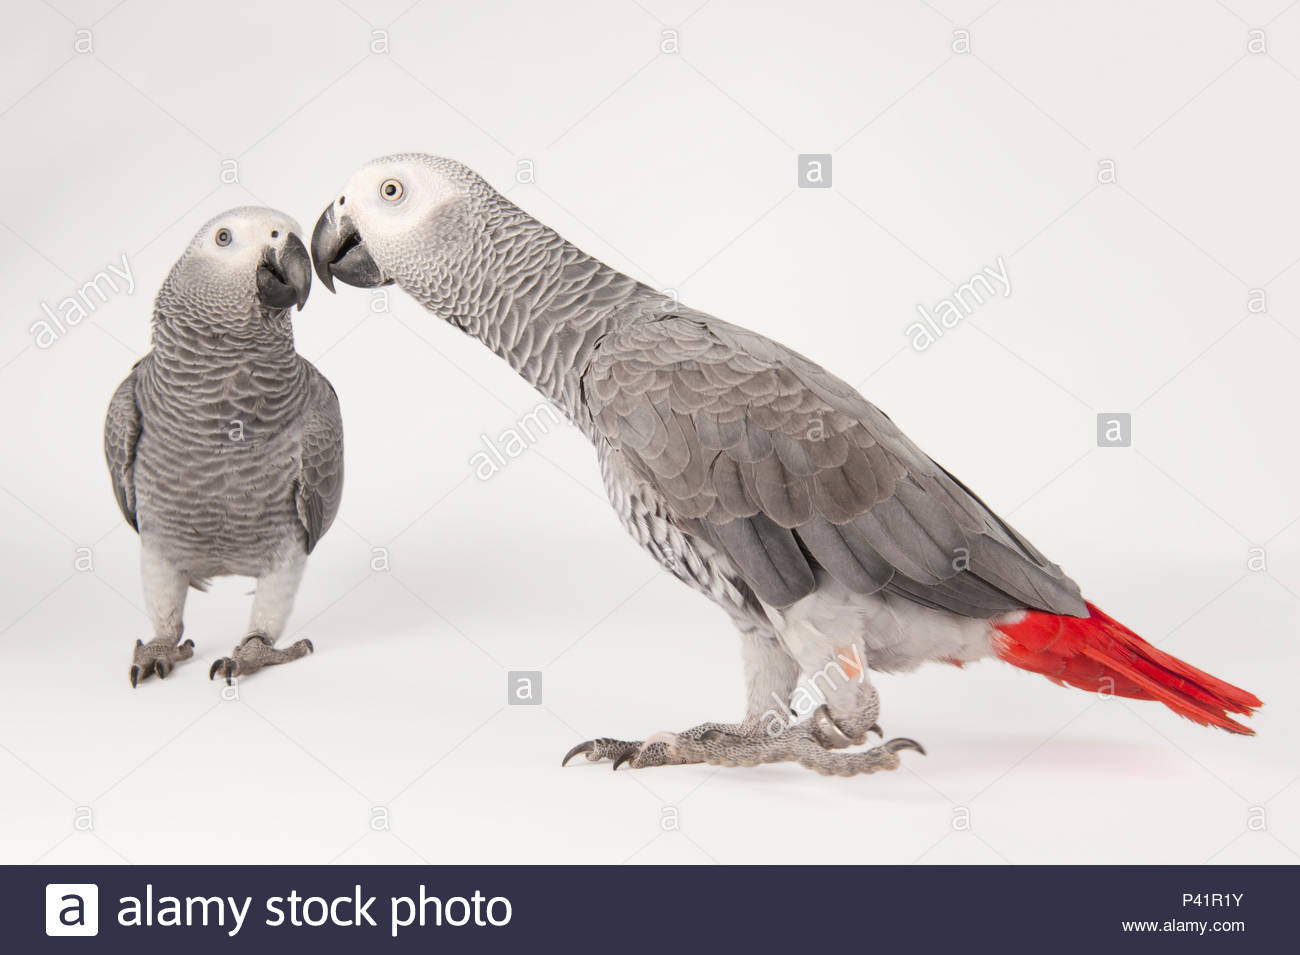 Endangered African grey parrots, Psittacus erithacus erithacus, at Parrots in Paradise. - Stock Image